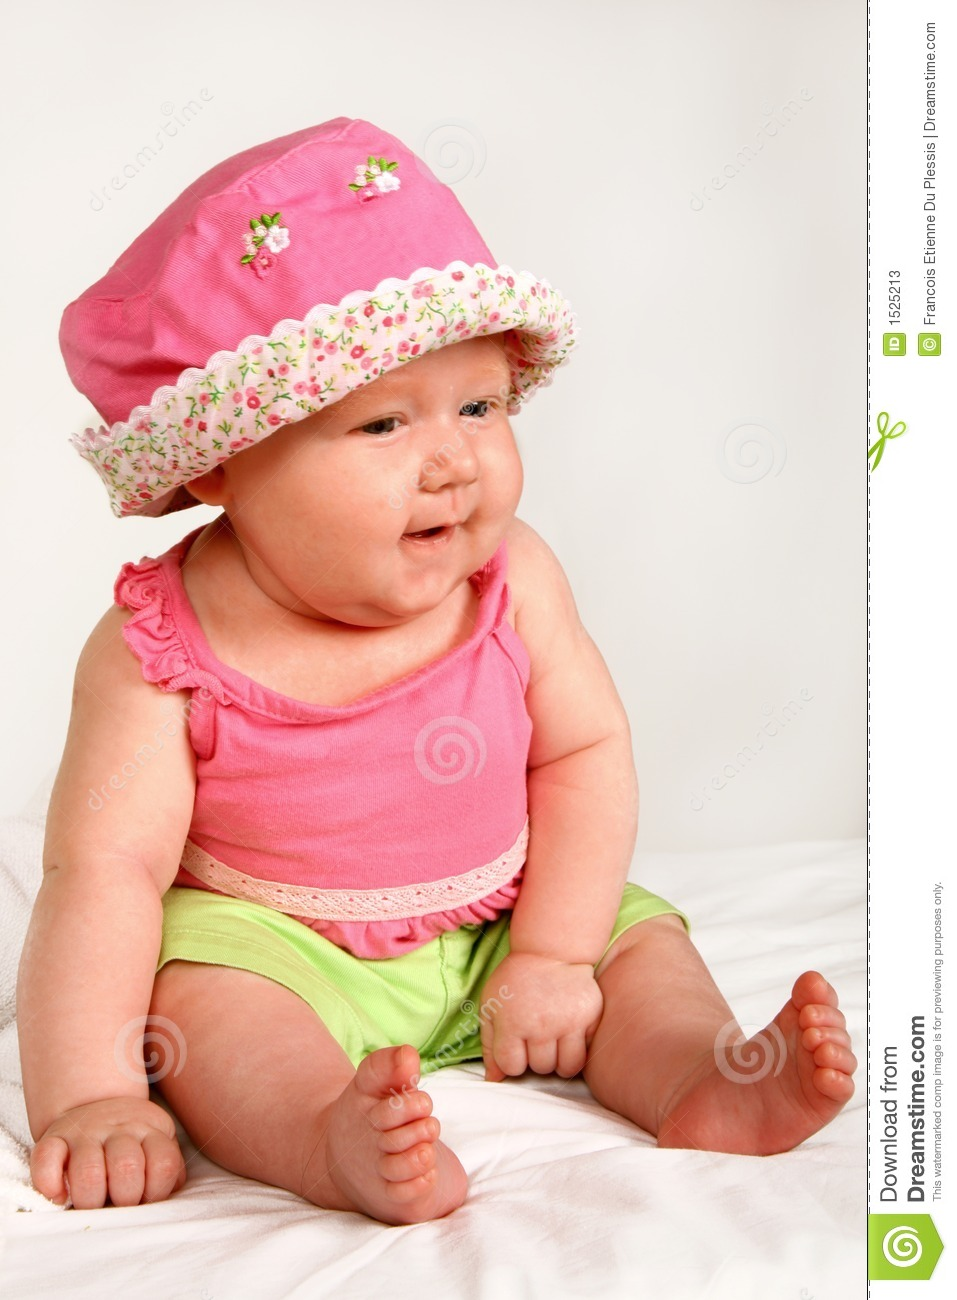 baby girl sitting with a hat on her head.